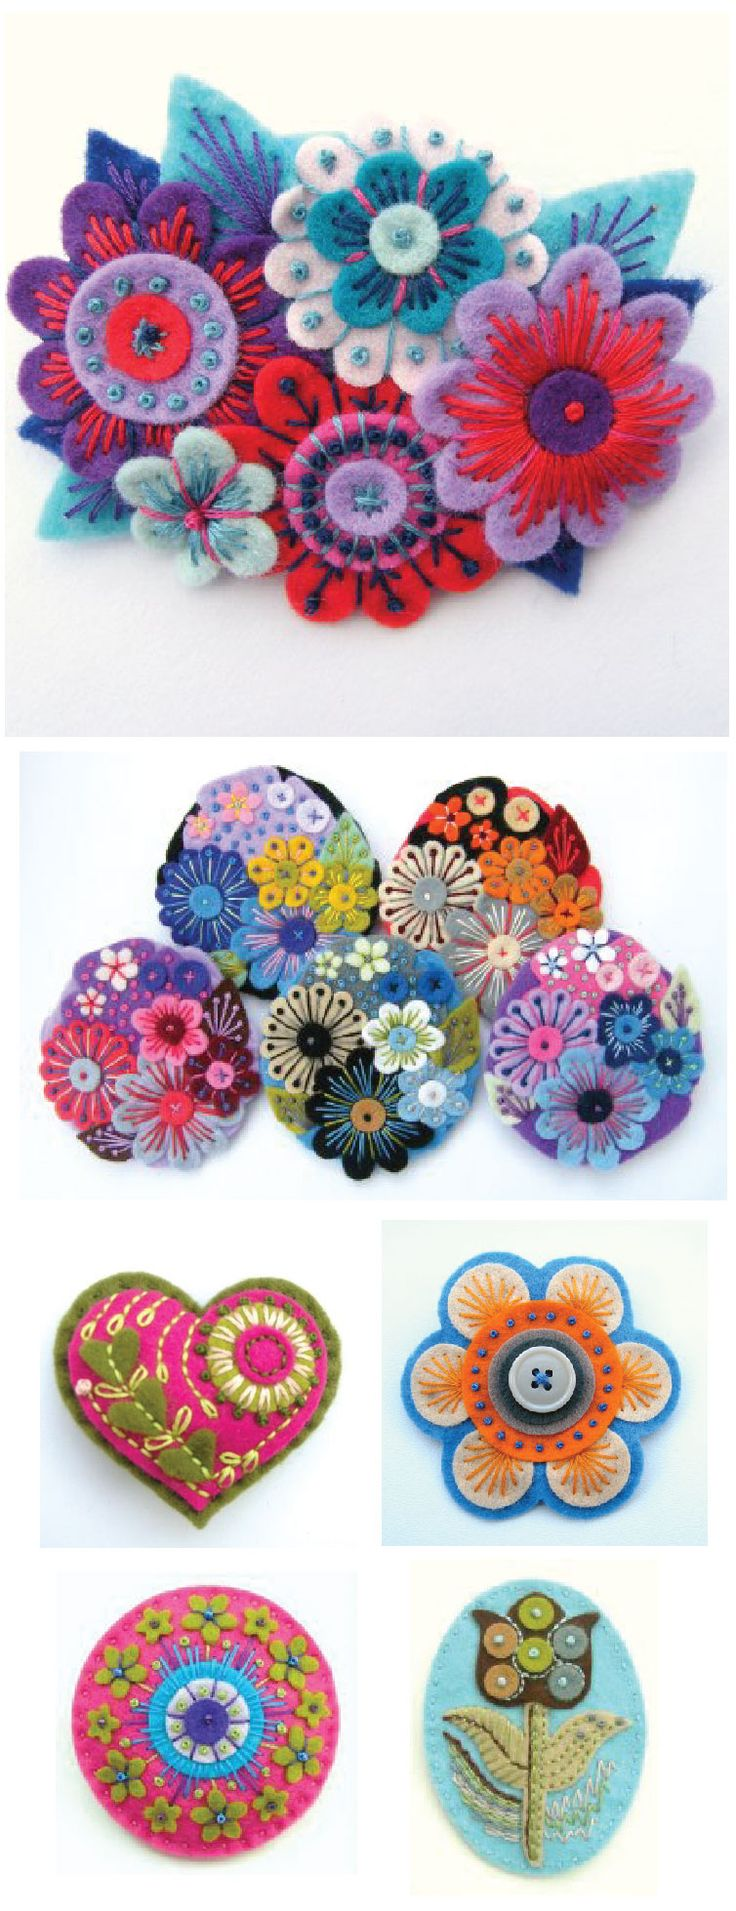 Lovely flowersVans Like, Bloemen Vans, Vilt Gemaakt, Felt, Sconces, Leuke Ides, Felt Flowers, Crafty Ideas, Crafts